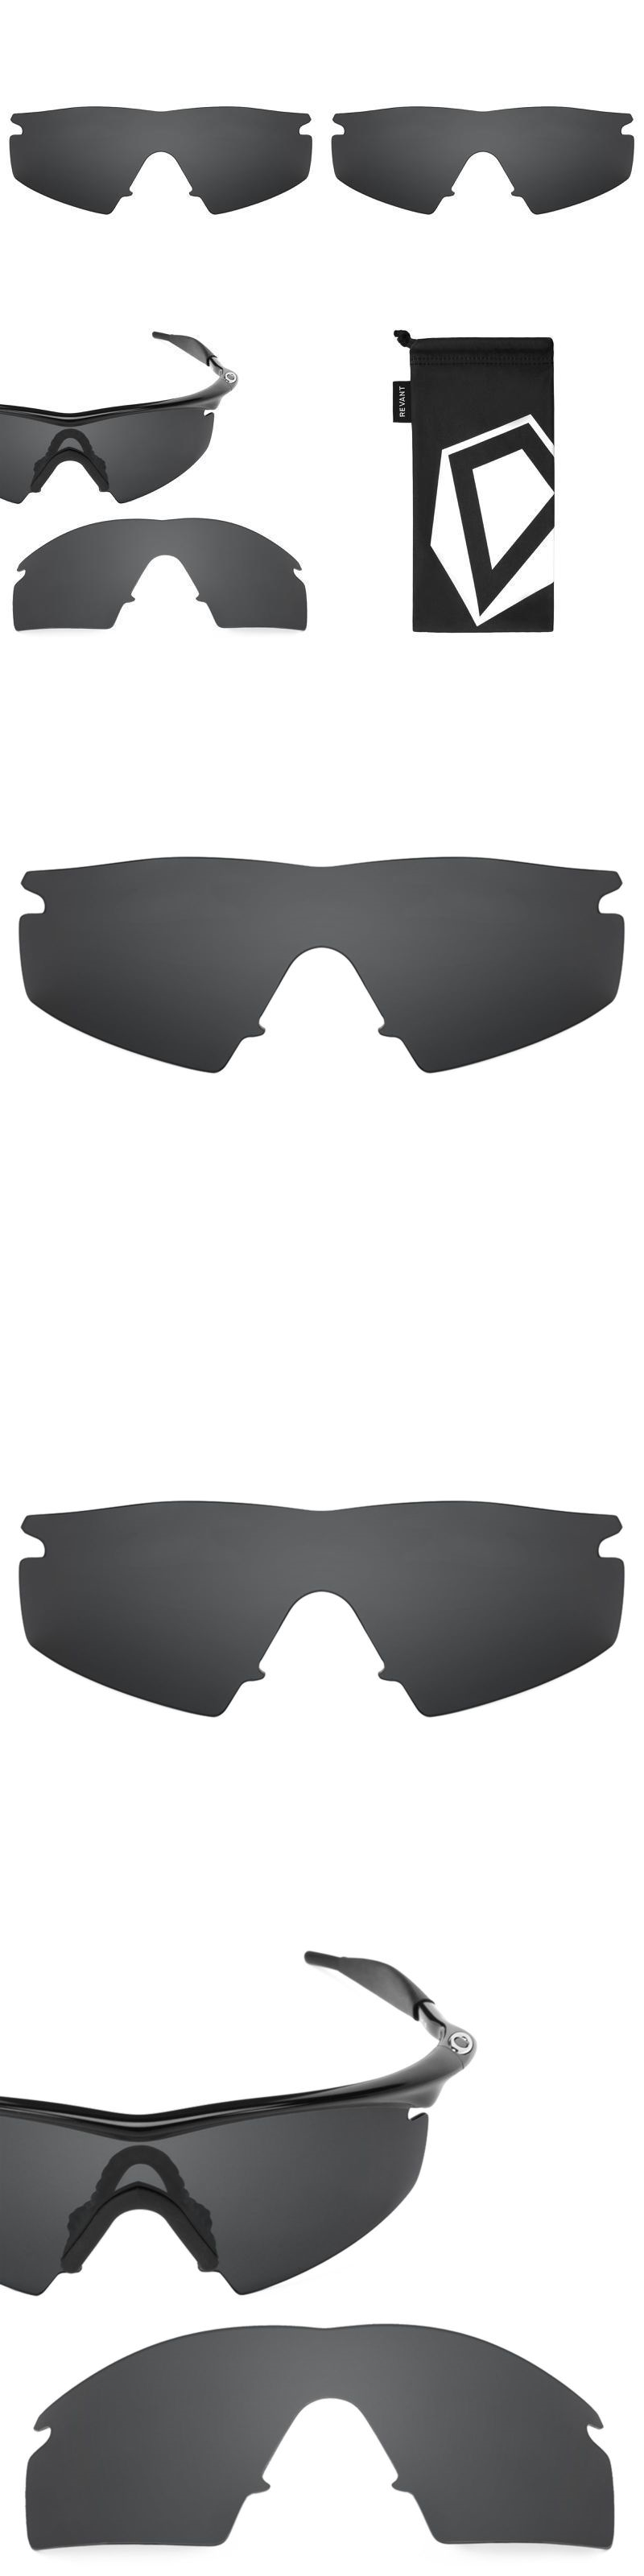 Sunglass Lens Replacements 179194: Revant Polarized Replacement Lens ...